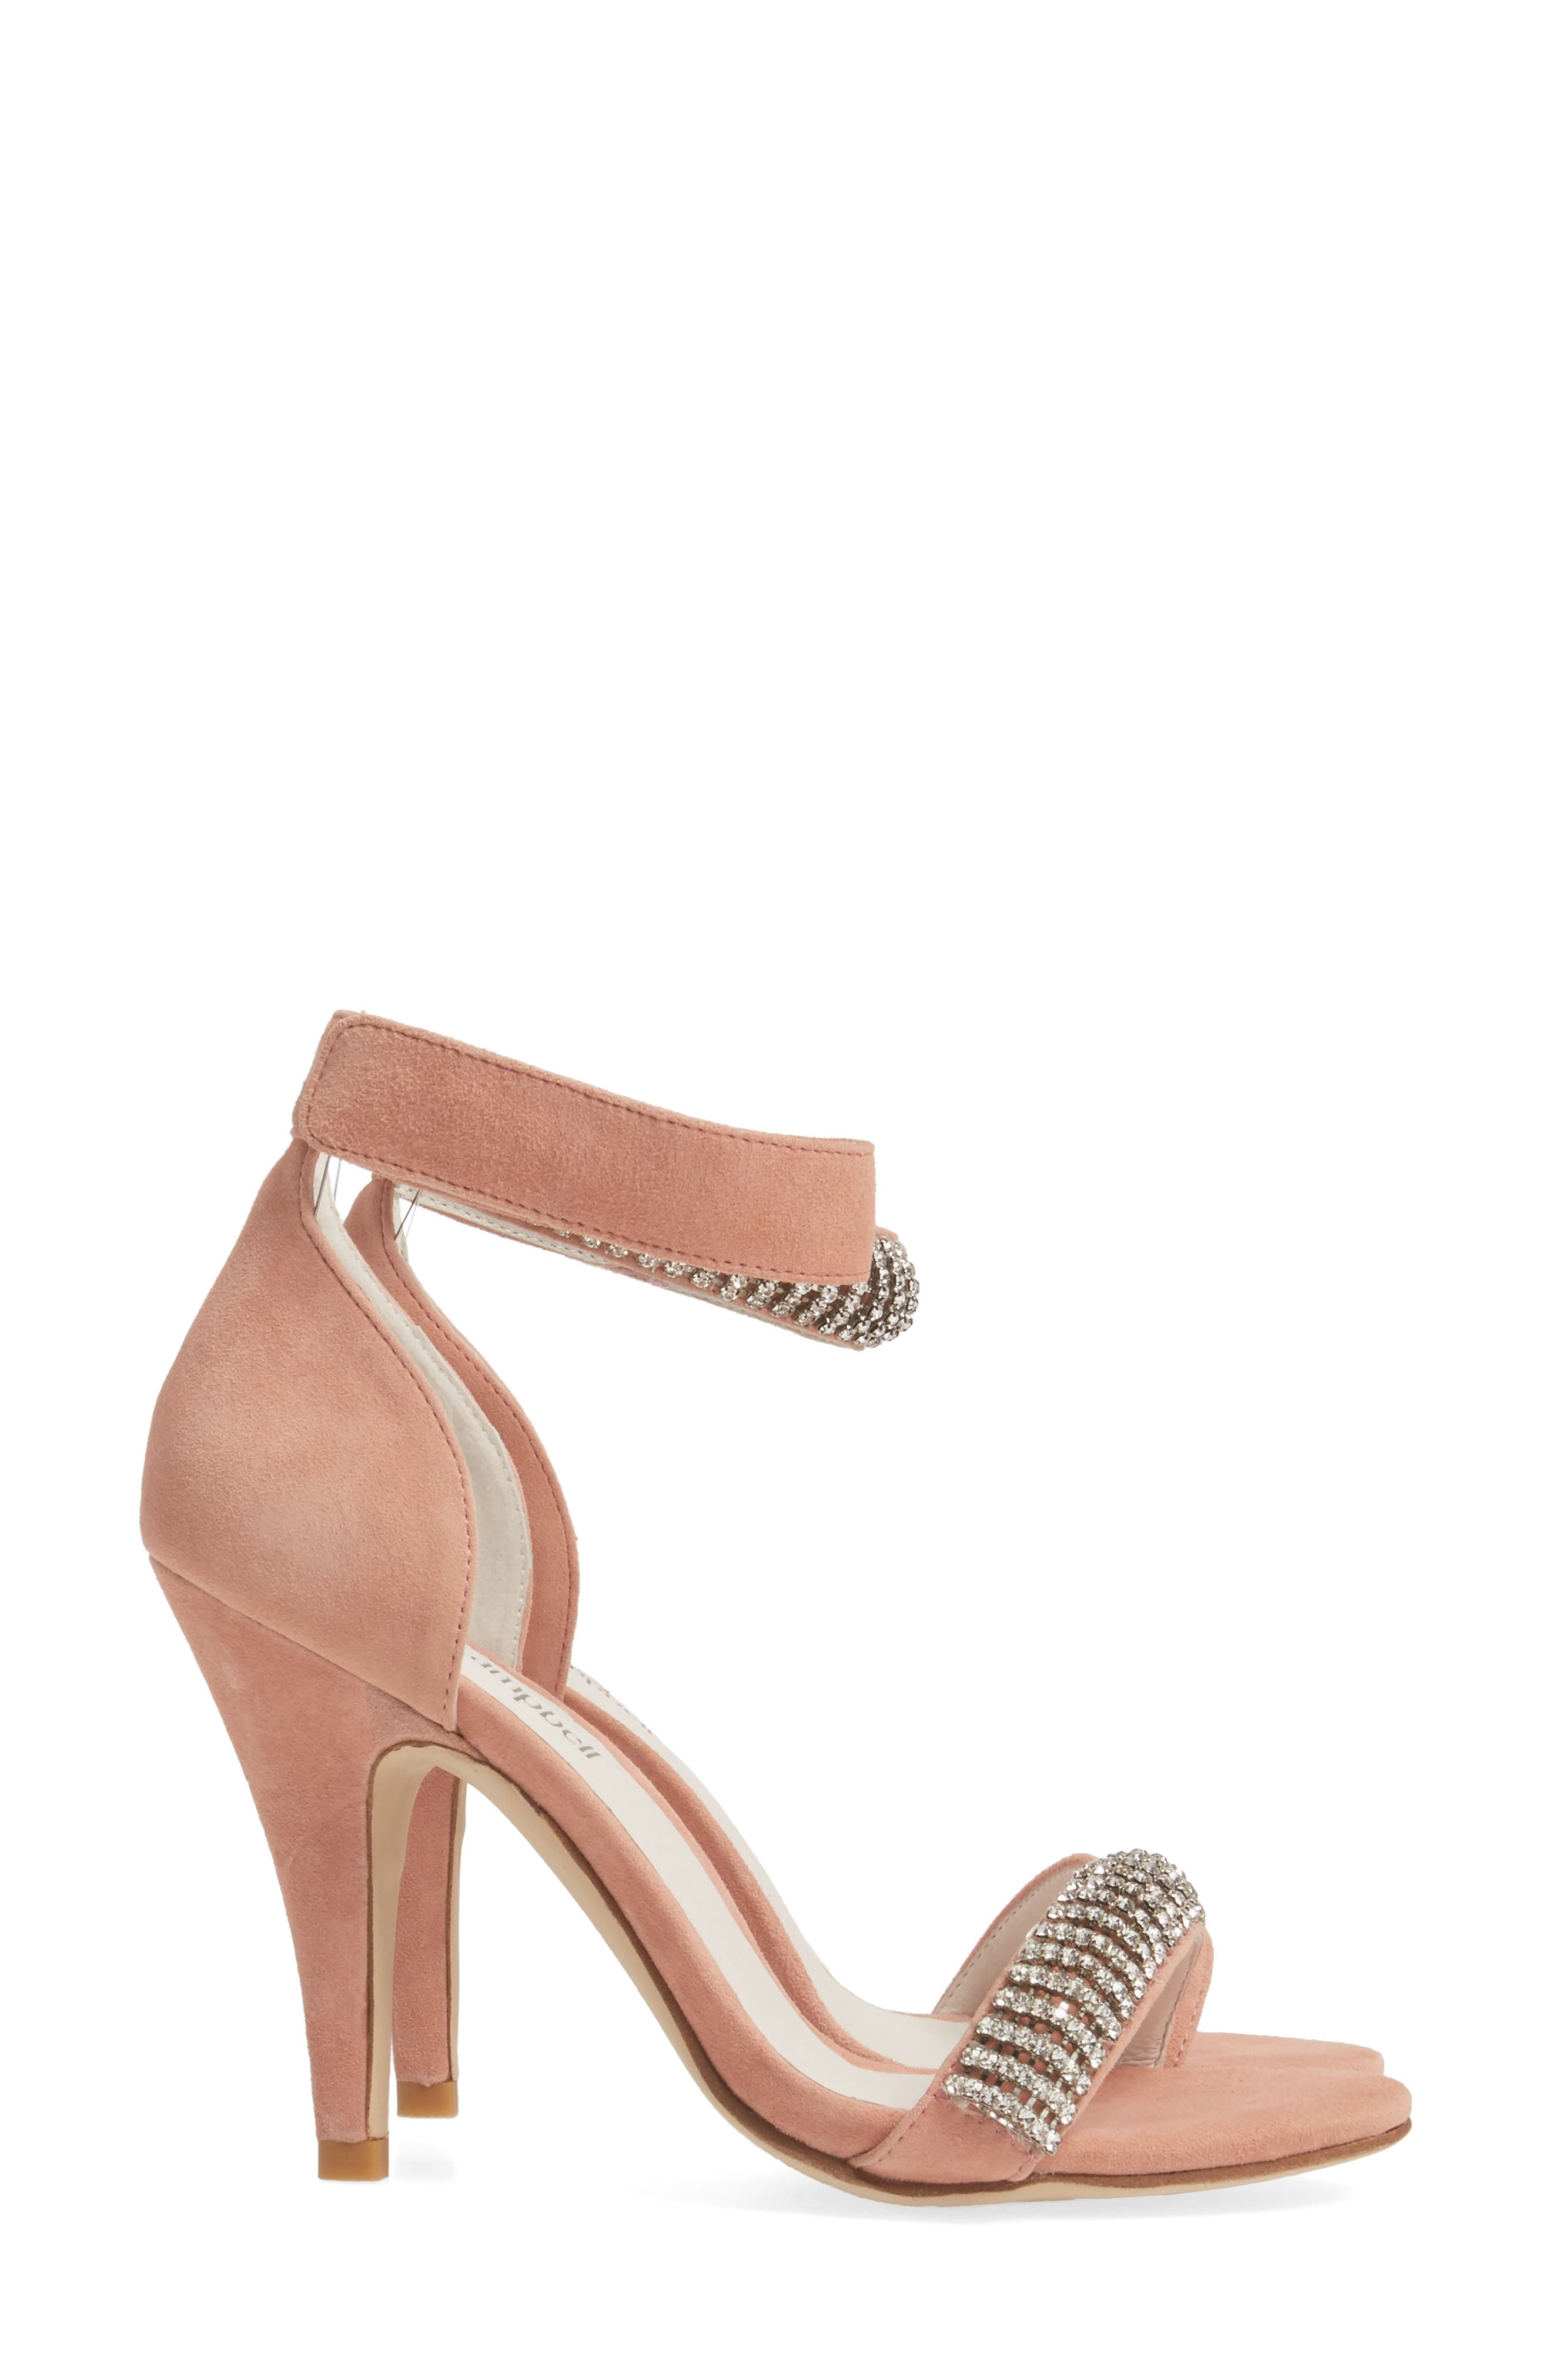 Alternate Image 3  - Jeffrey Campbell Kristy Ankle Strap Sandal (Women)